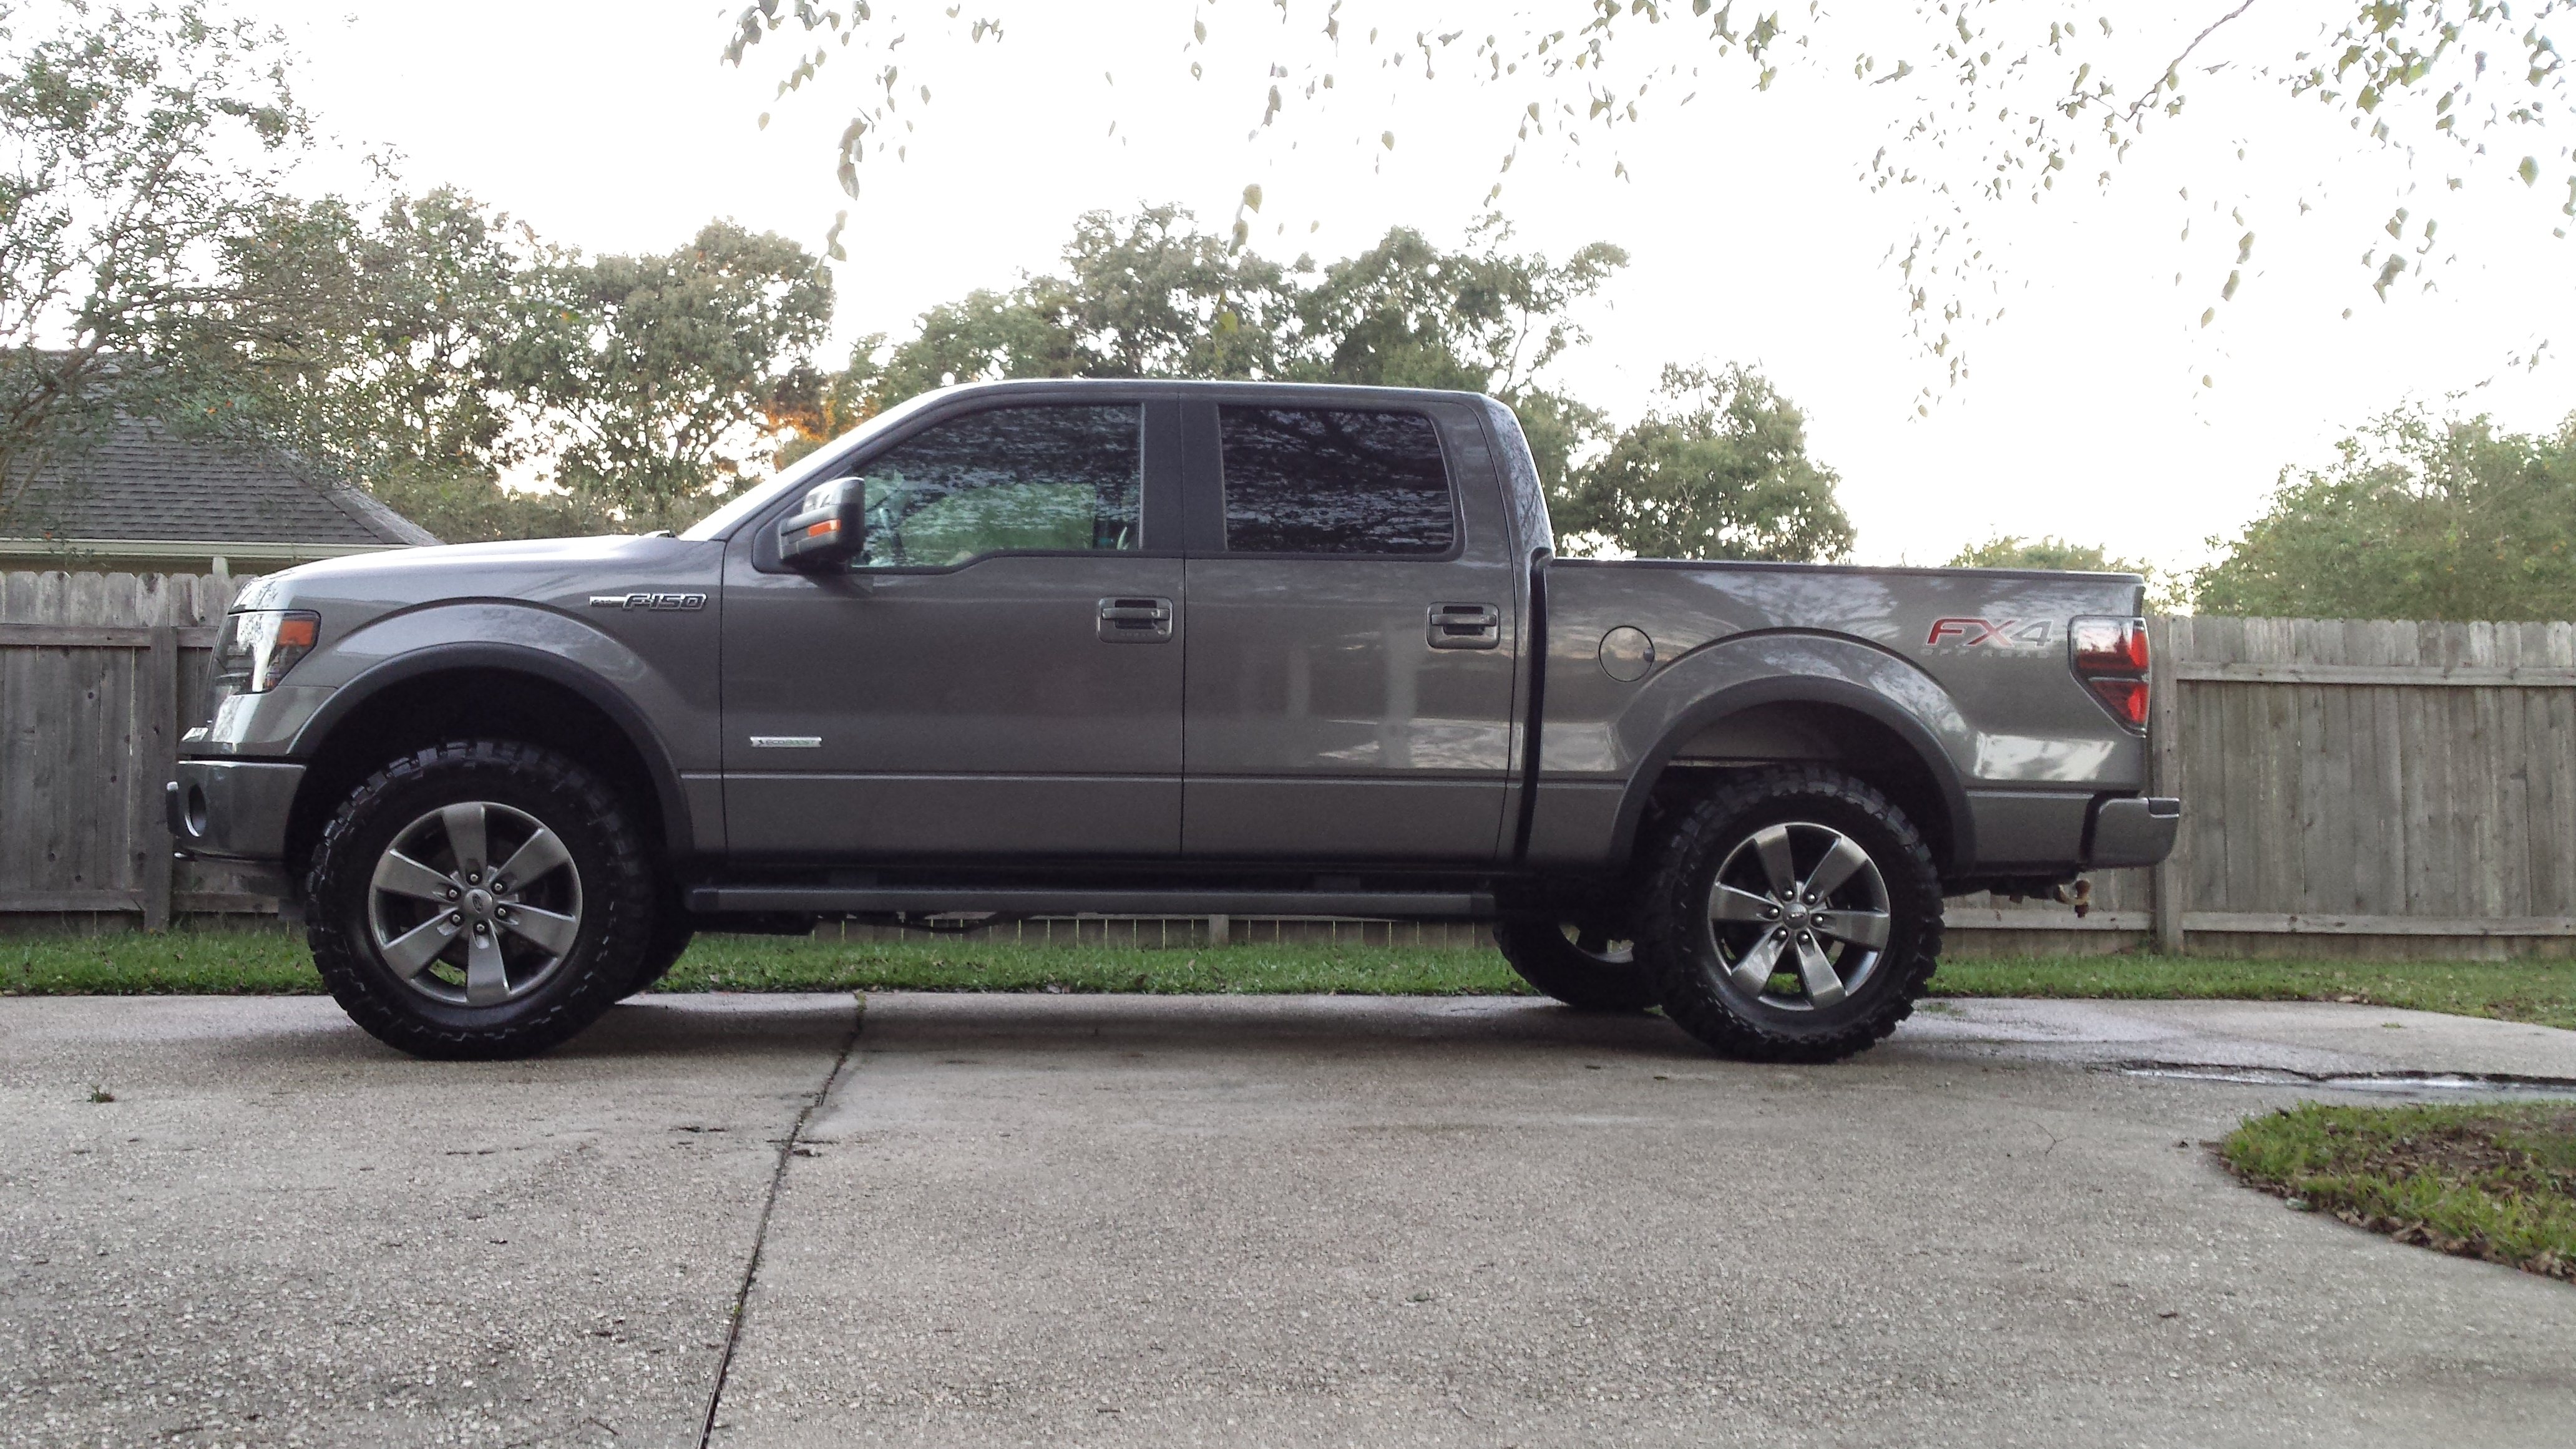 """Pics of stock FX4 20"""" wheels with 35/12.5/20 tires?"""